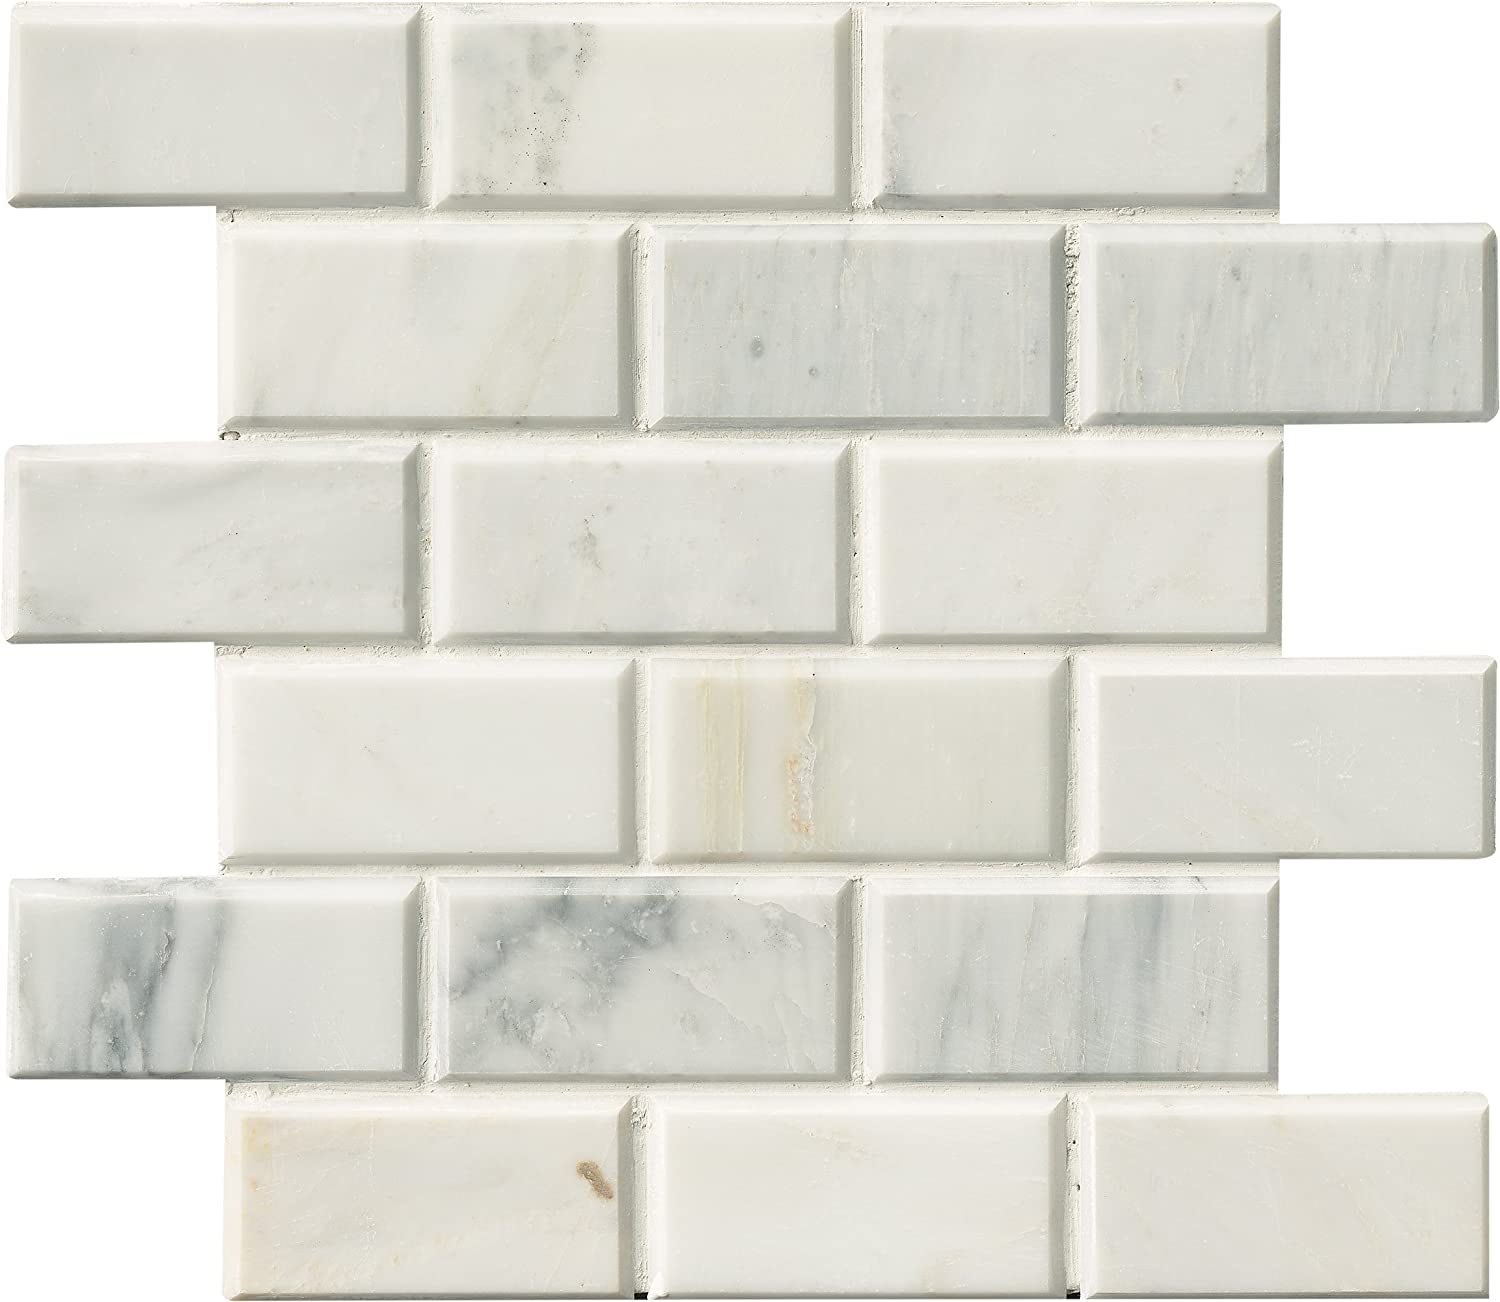 M S International Arabescato Carrara 2 In X 4 In Honed And Beveled Marble Mesh Mounted Mosaic Tile 10 Sq Ft 10 Pieces Per Case